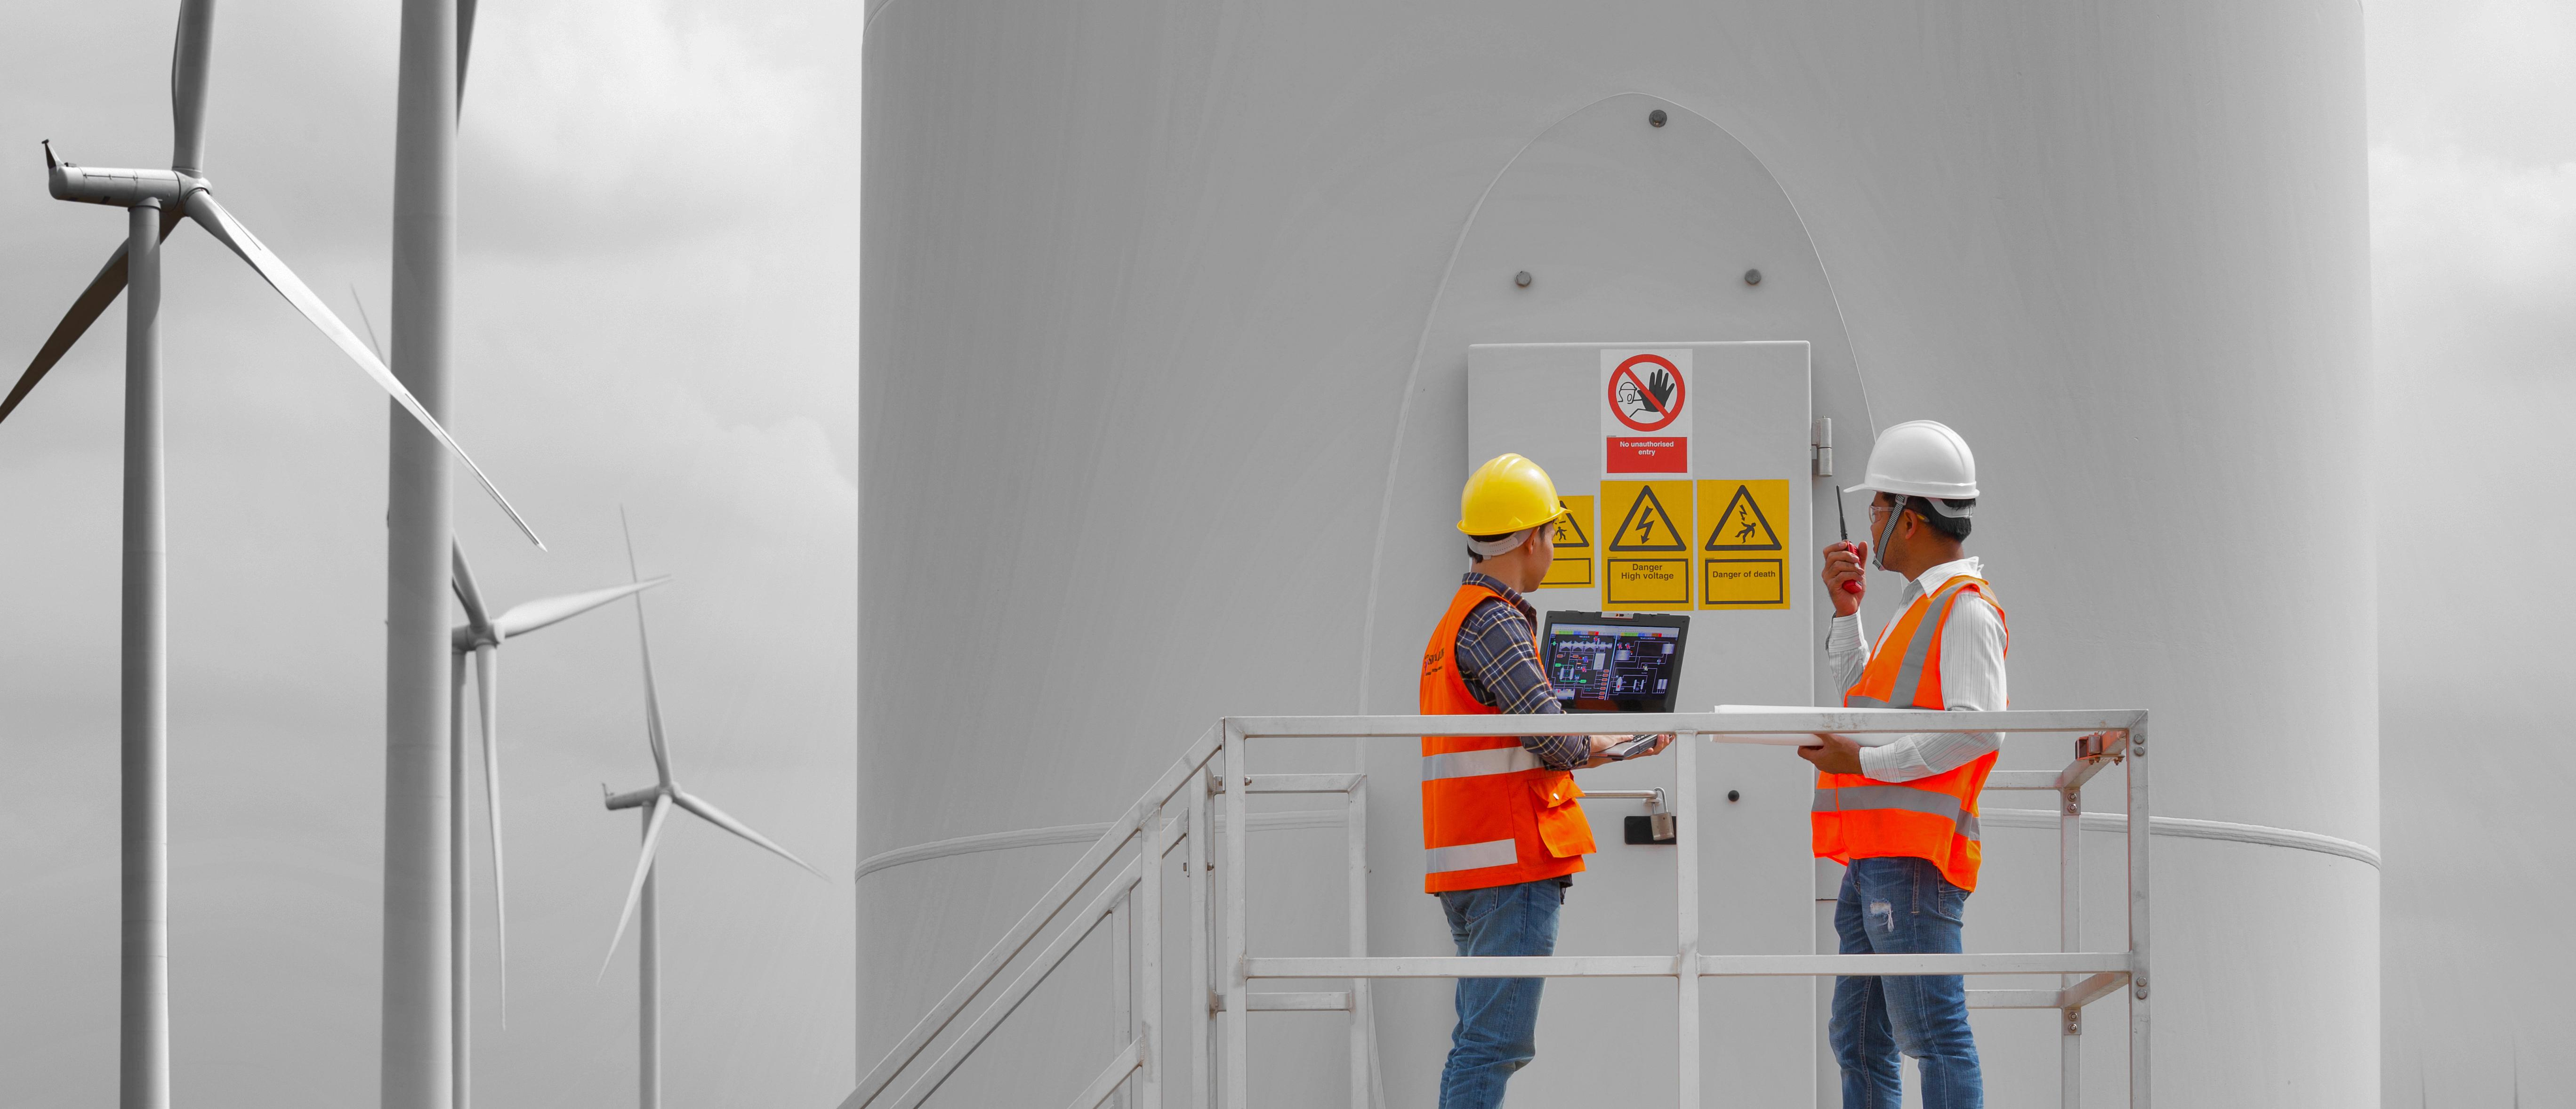 Header_Services_HealthSafety_Windfarm_Safety_Compliance_1800x775